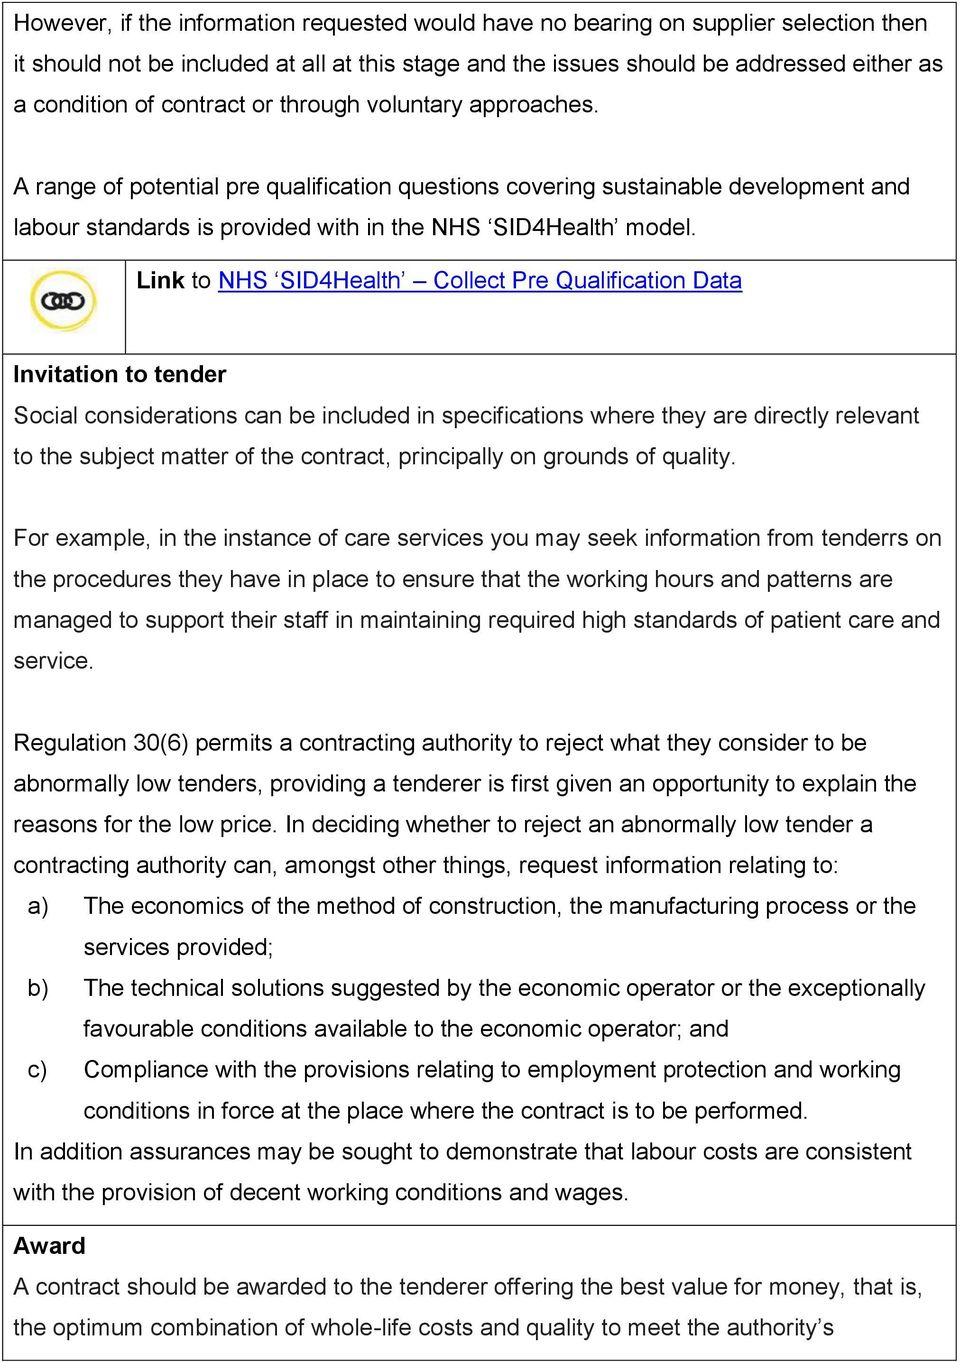 Link to NHS SID4Health Collect Pre Qualification Data Invitation to tender Social considerations can be included in specifications where they are directly relevant to the subject matter of the